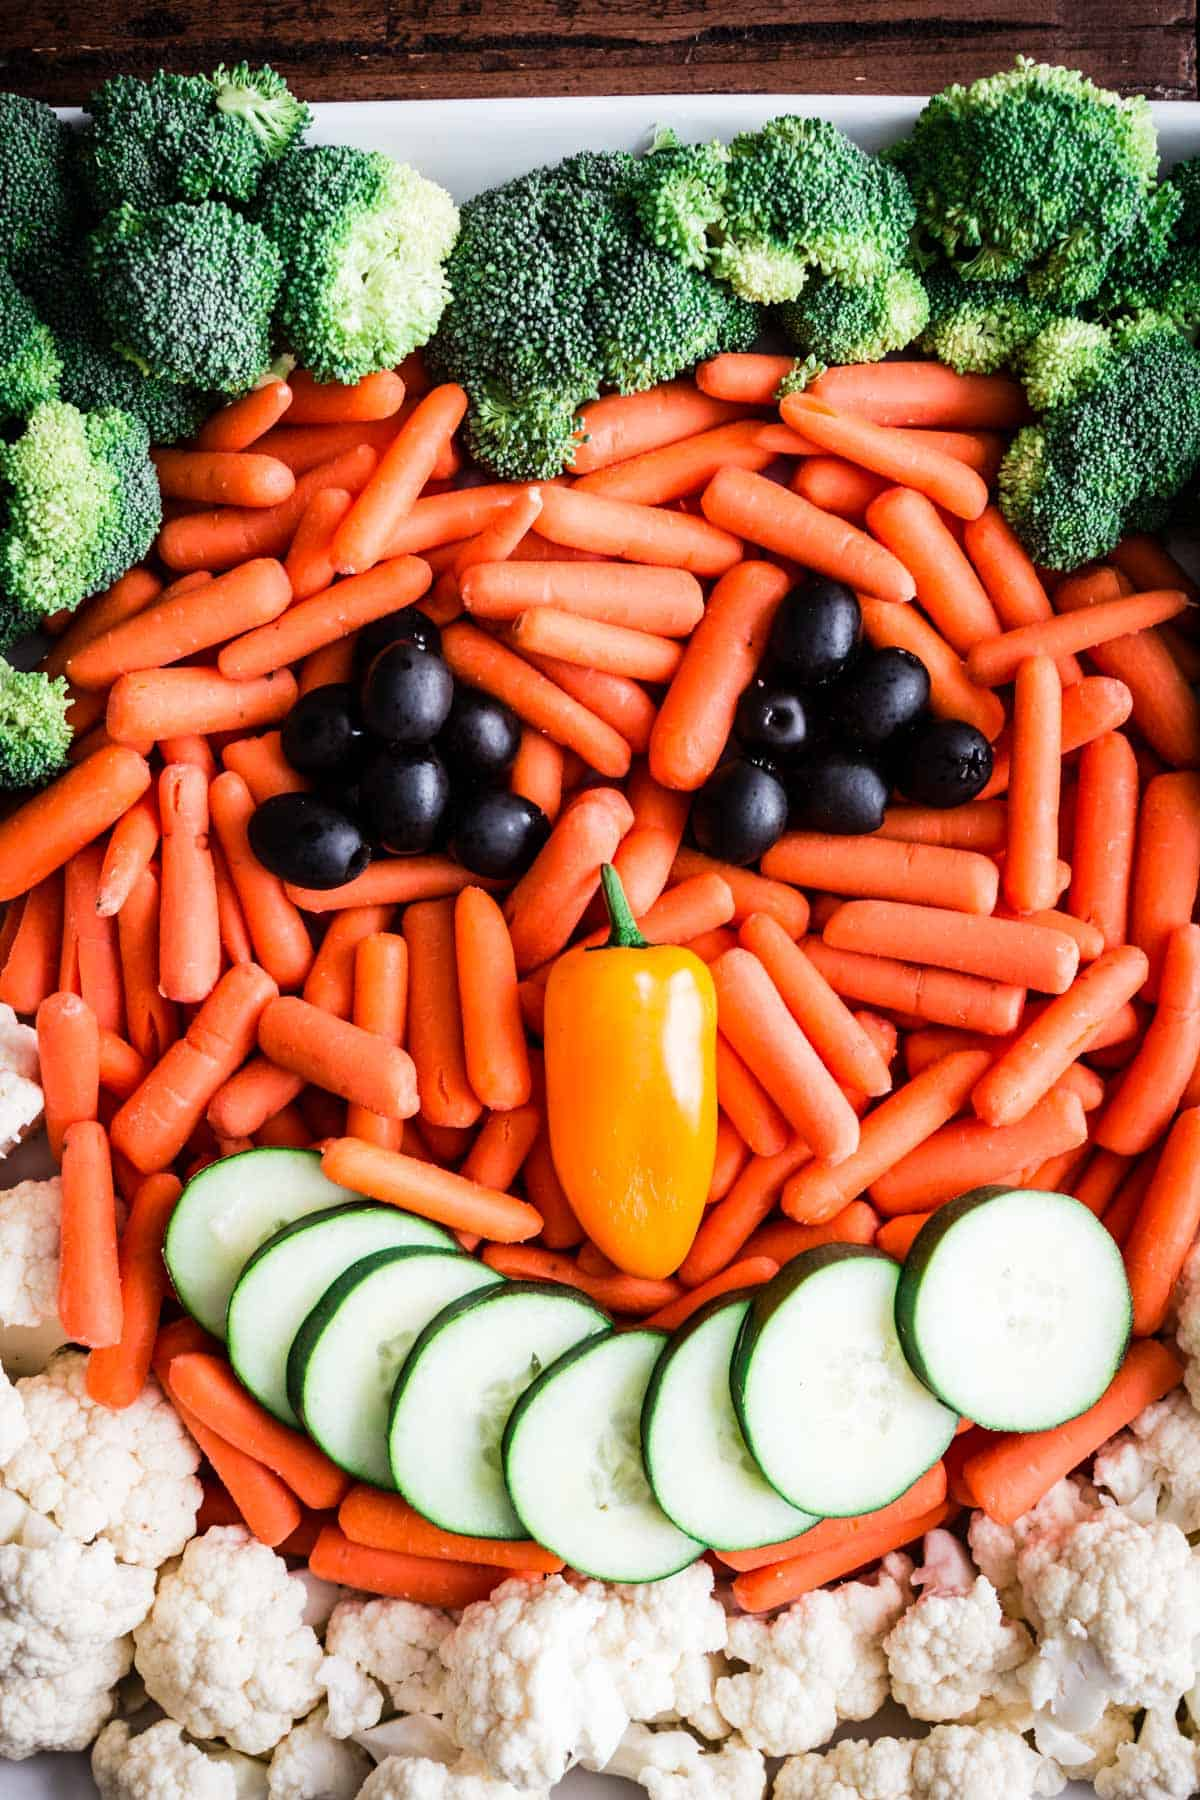 A veggie plate with mini carrots, cucumber, black olives, broccoli, cauliflower and a yellow pepper arranged to look like a smiling jack o'lantern.